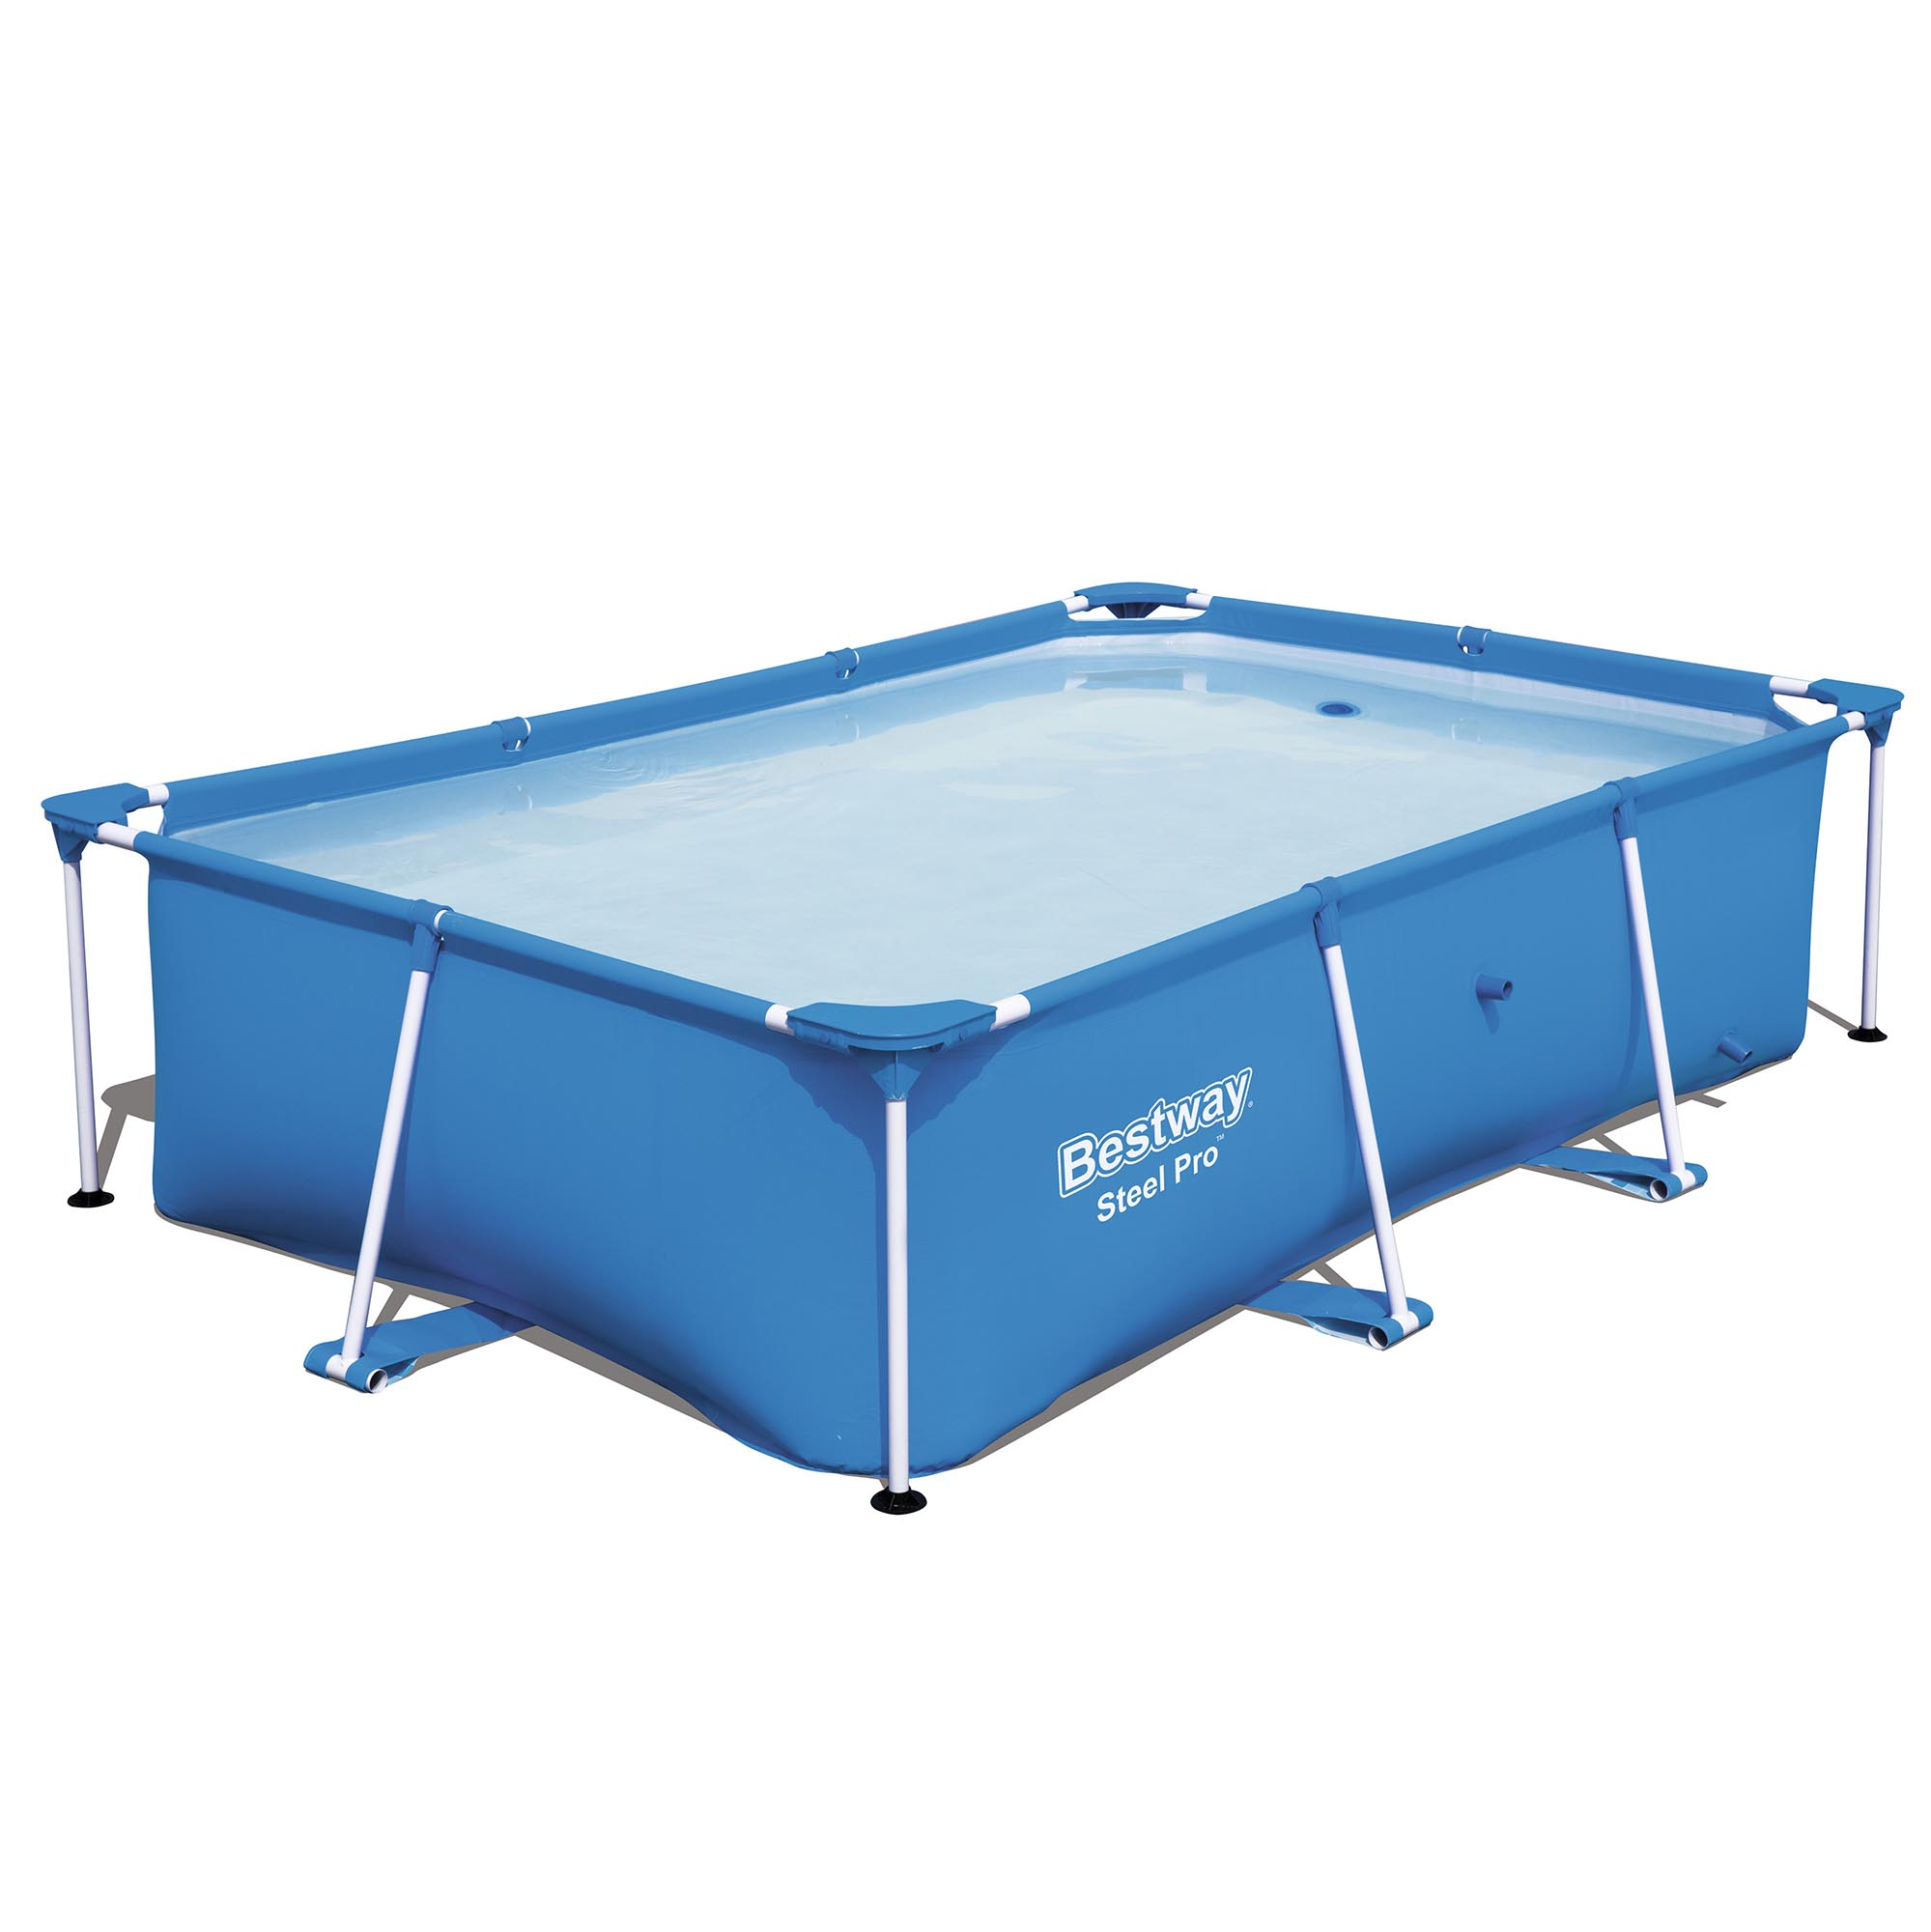 "Bestway Steel Pro 102 x 67 x 24"" Rectangular Frame Above Ground Swimming Pool by Bestway"